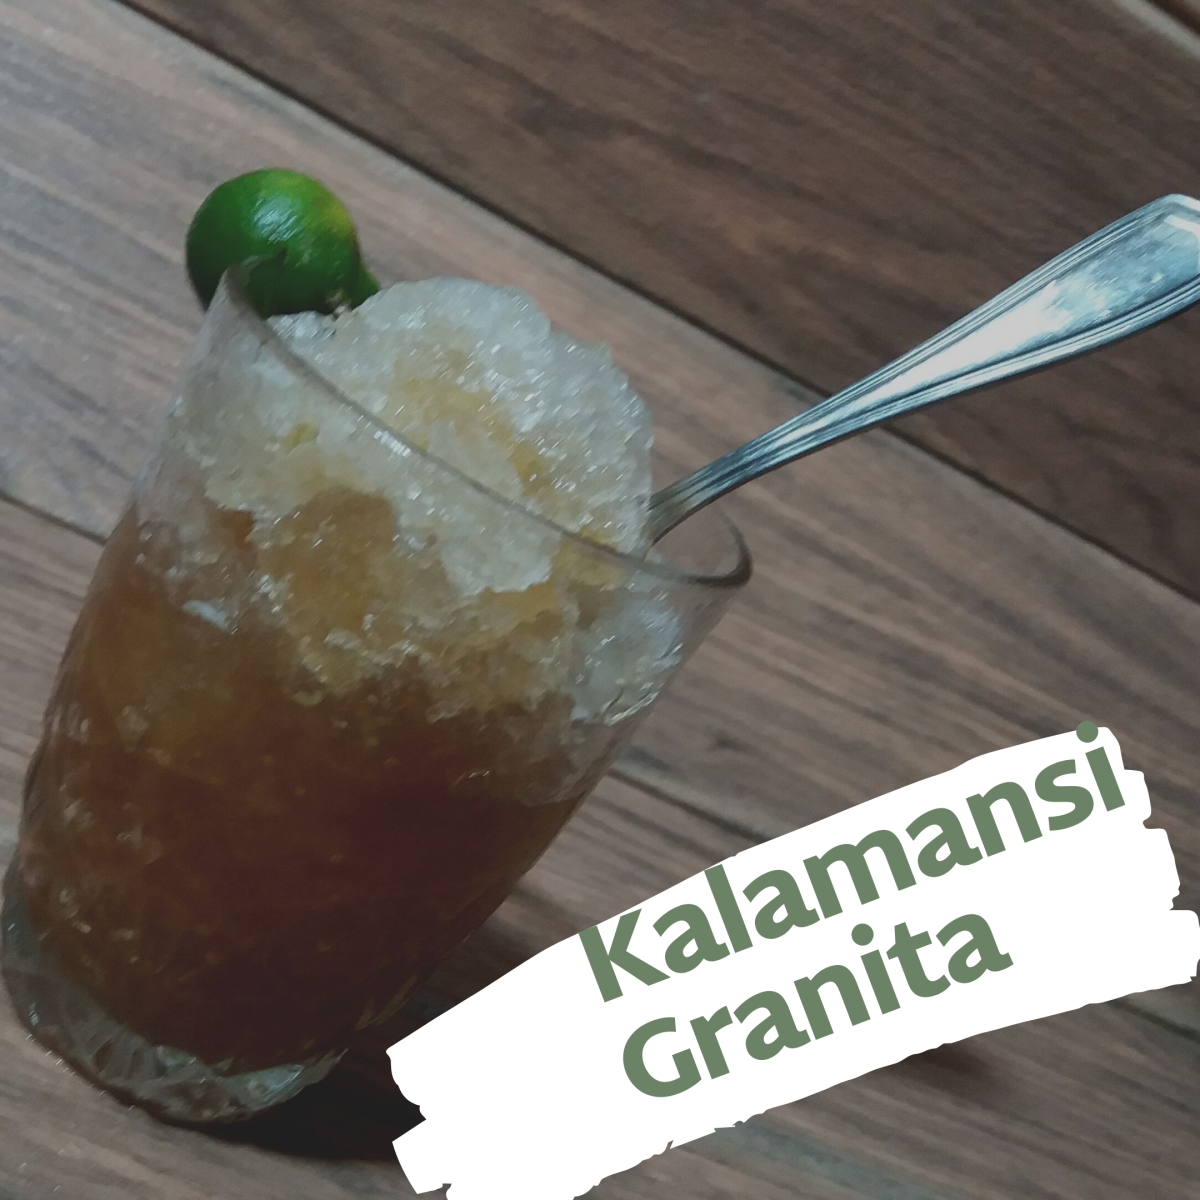 How to Make Kalamansi Granita: A Sicilian-Inspired Frozen Dessert